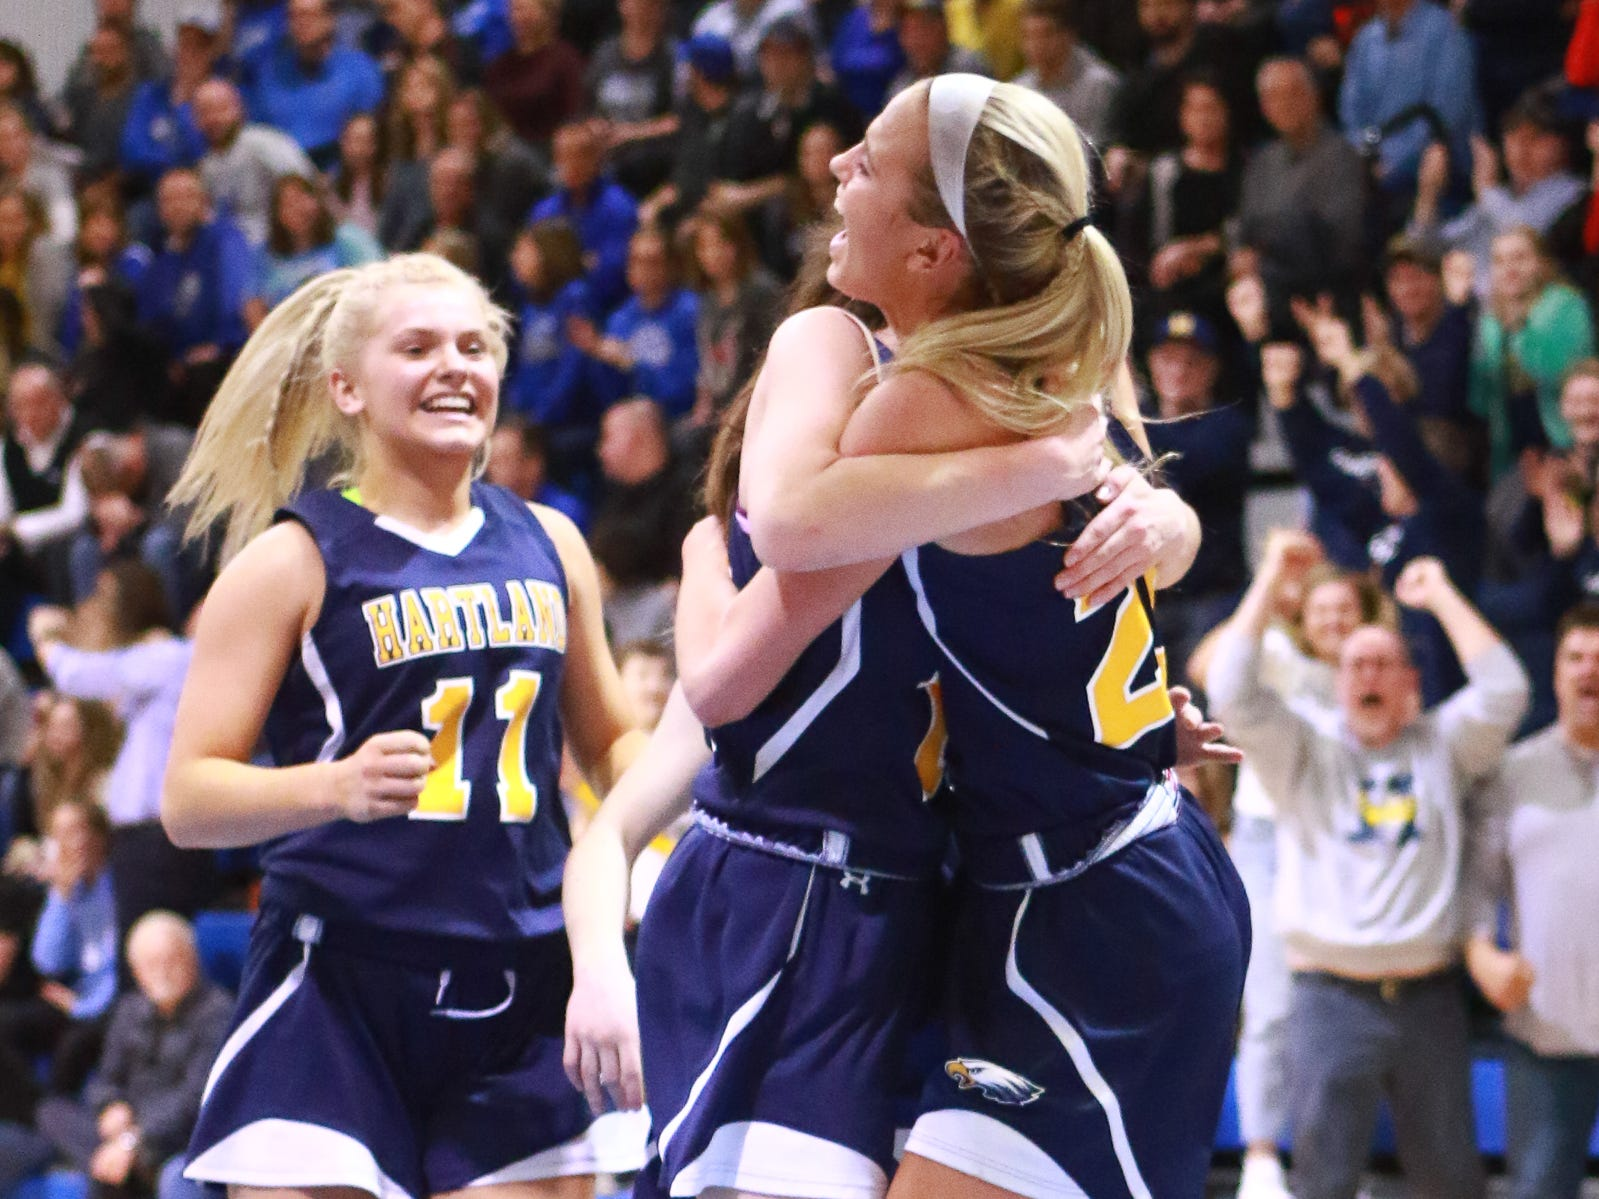 Whitney Sollom (right) celebrates after being fouled while making a basket late in a 50-46 victory over Walled Lake Western in a regional championship basketball game at Lakeland on Wednesday, March 13, 2019.